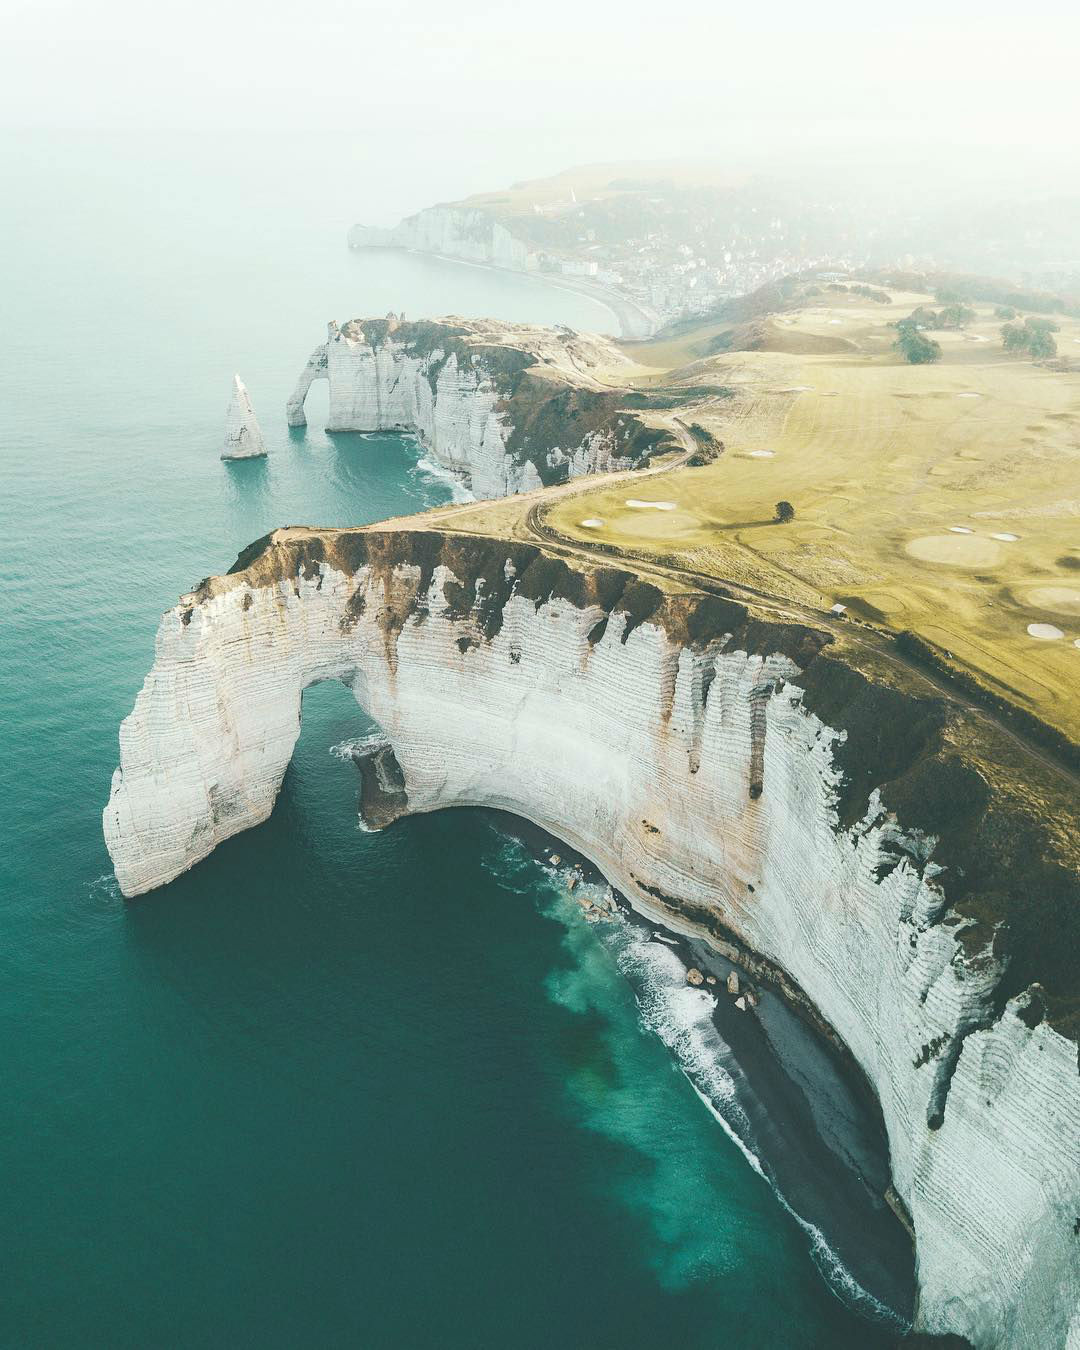 Travel Drone Adventurous Photography by Robin Wittwer